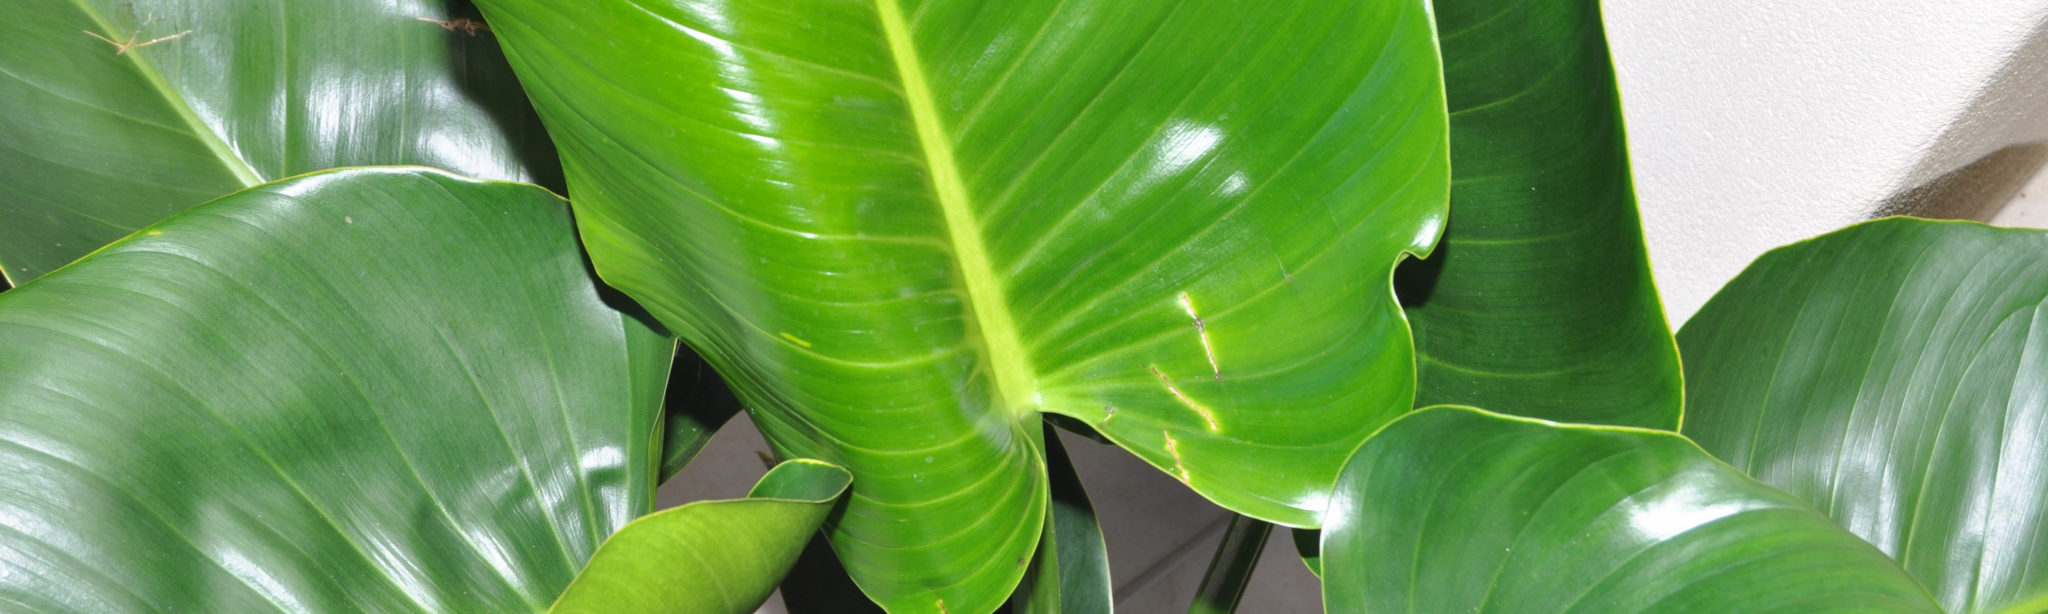 A closeup image of the glossy leaves of a Philodendron Congo.